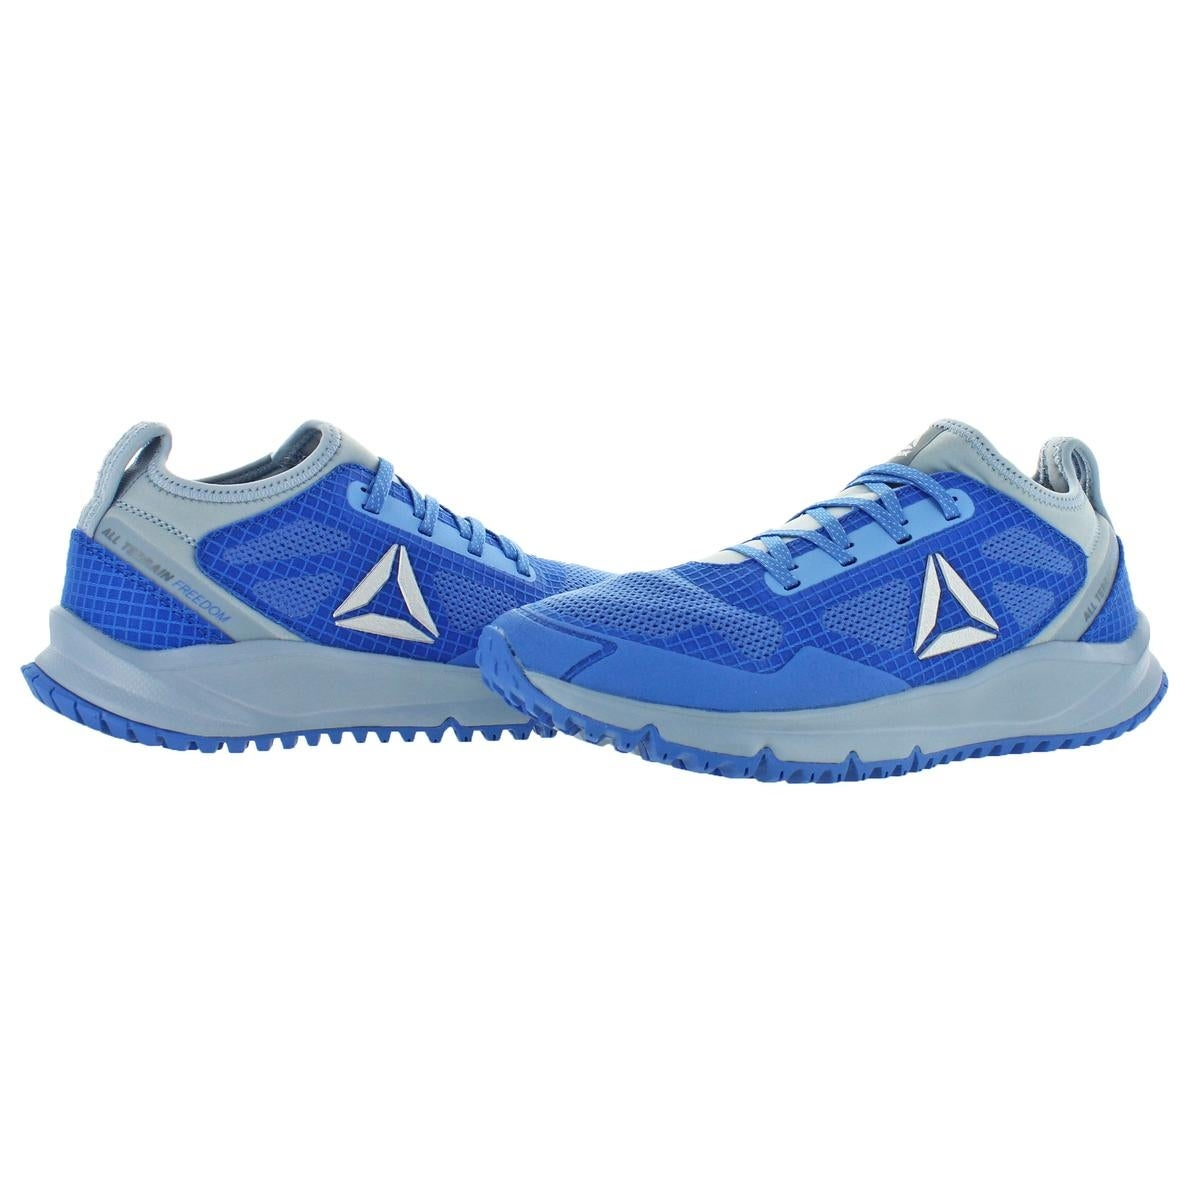 Reebok Womens All Terrain Freedom Running Shoes Athletic Lifestyle